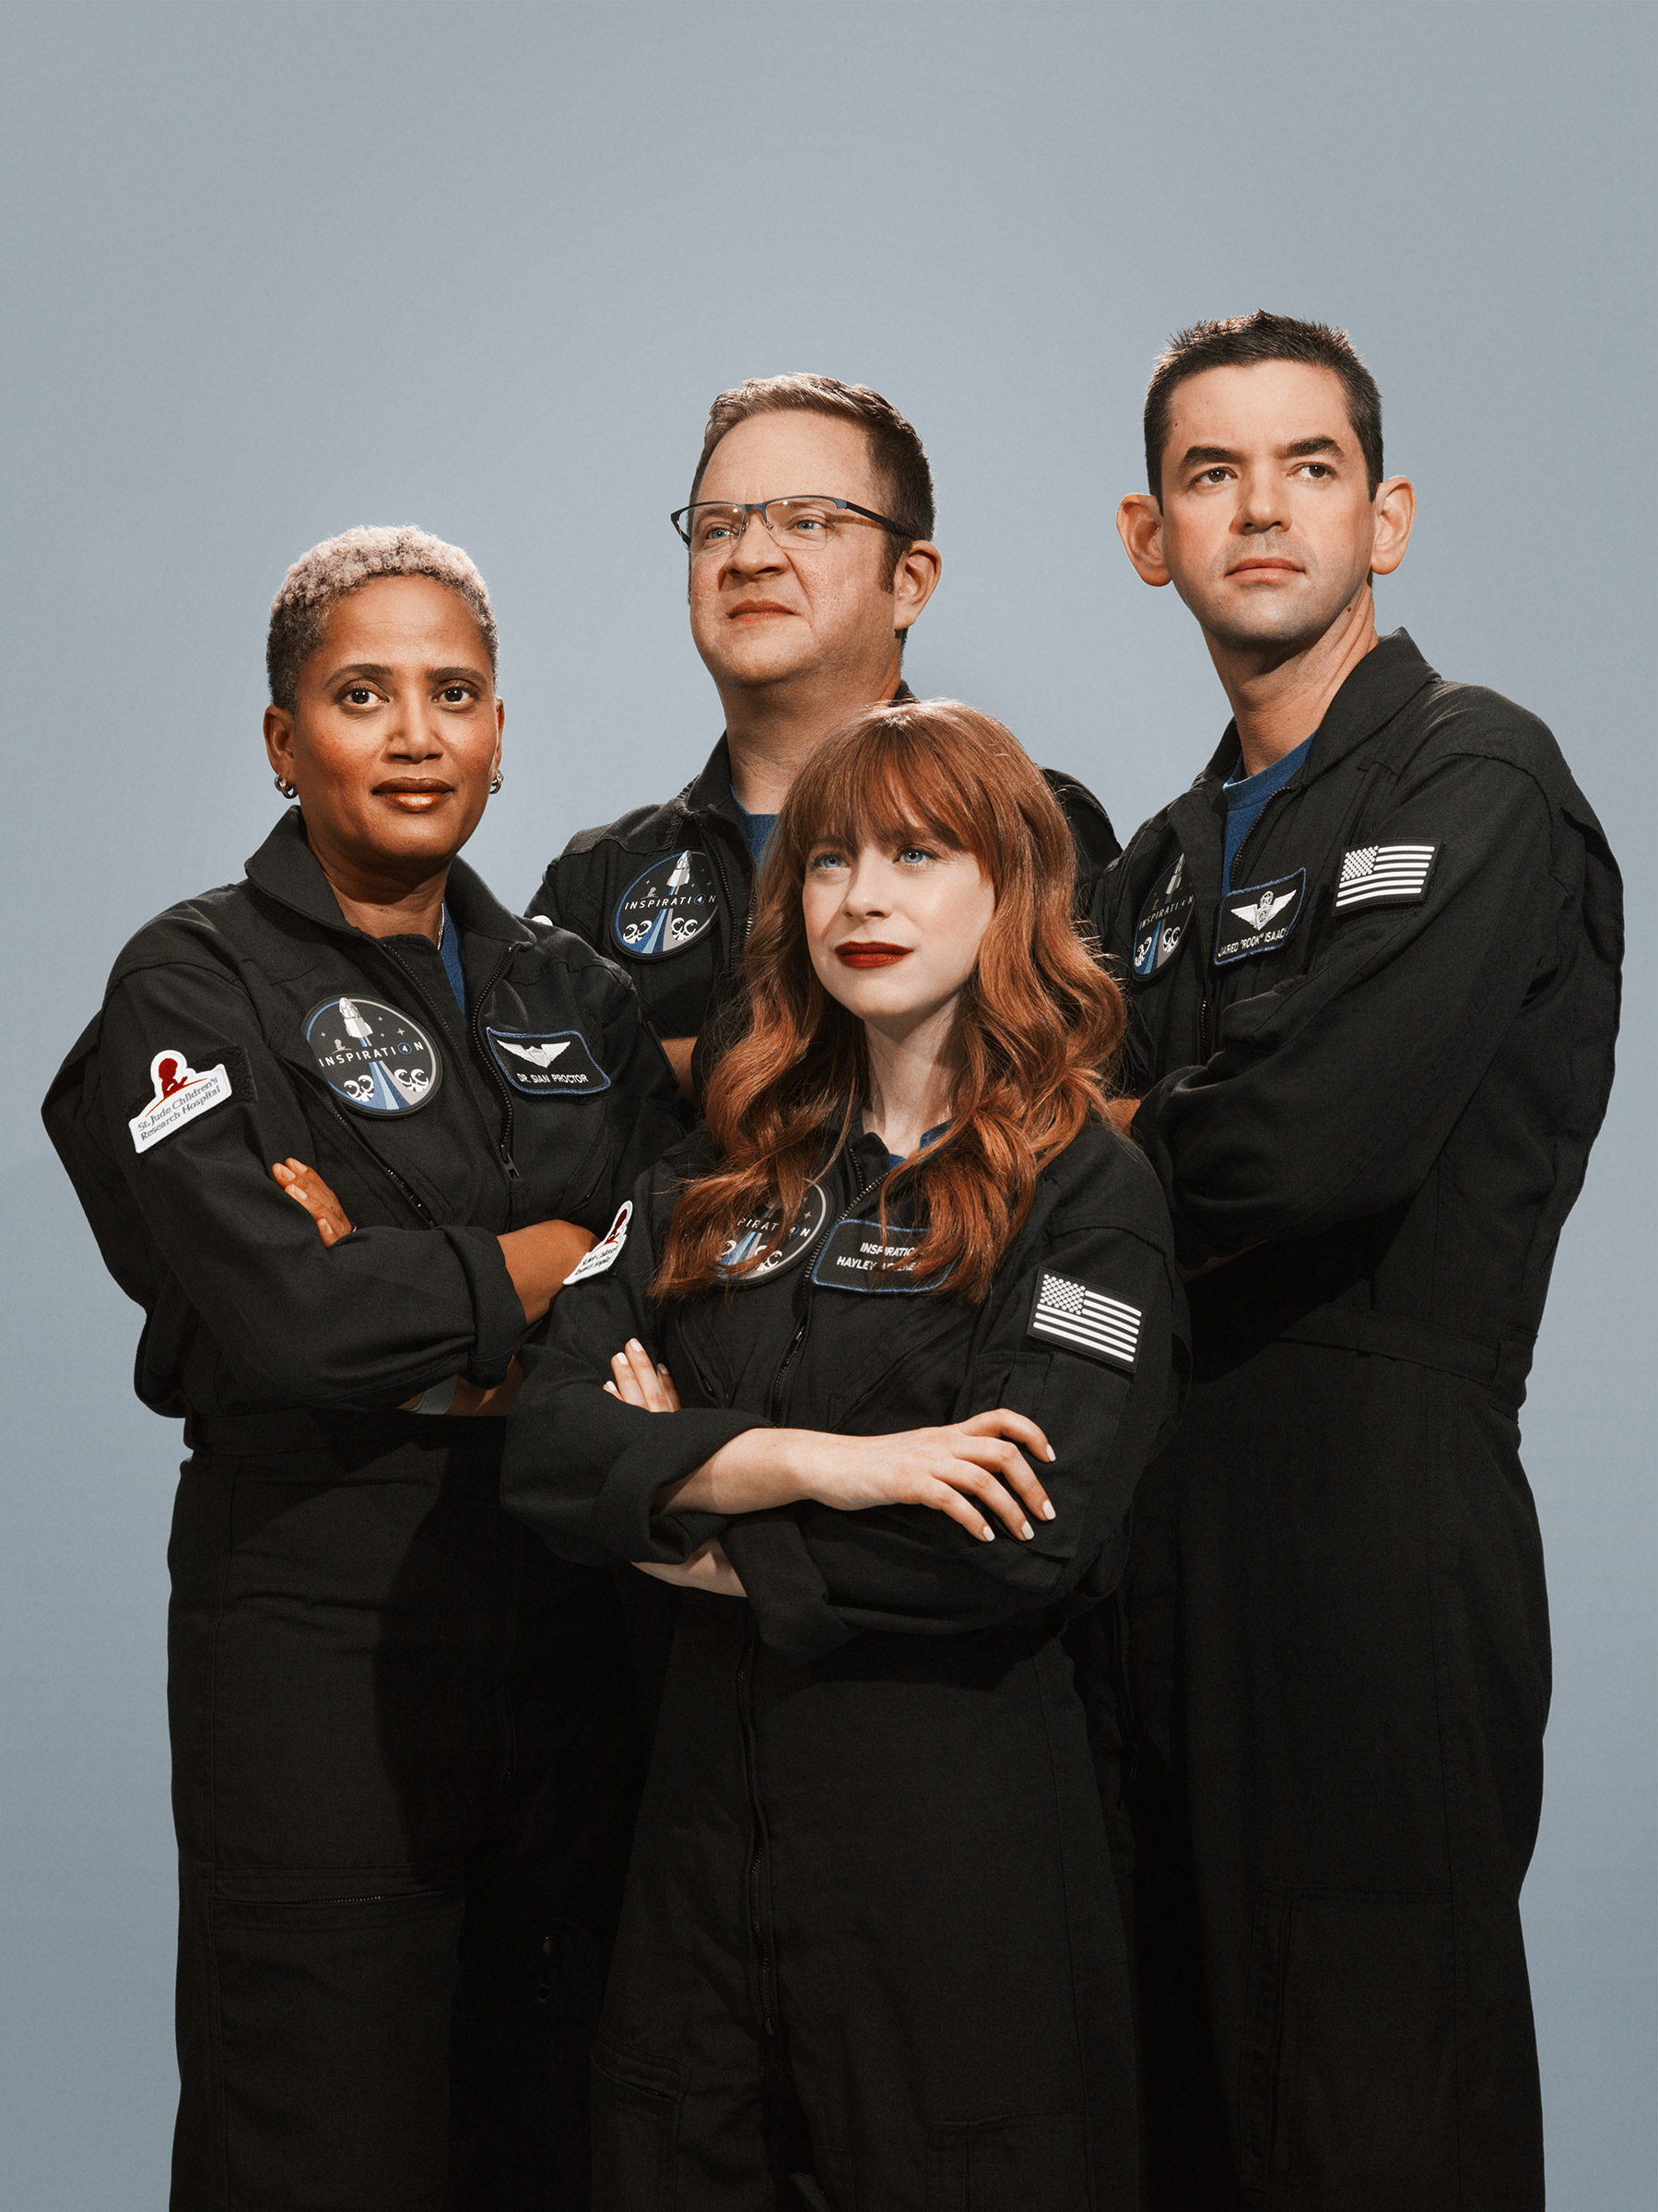 The crew of the Inspiration4, the world's first all-civilian mission to orbit. From left: Dr. Sian Proctor, Chris Sembroski, Hayley Arceneaux, and Jared Isaacman photographed in Los Angeles, July 2021.